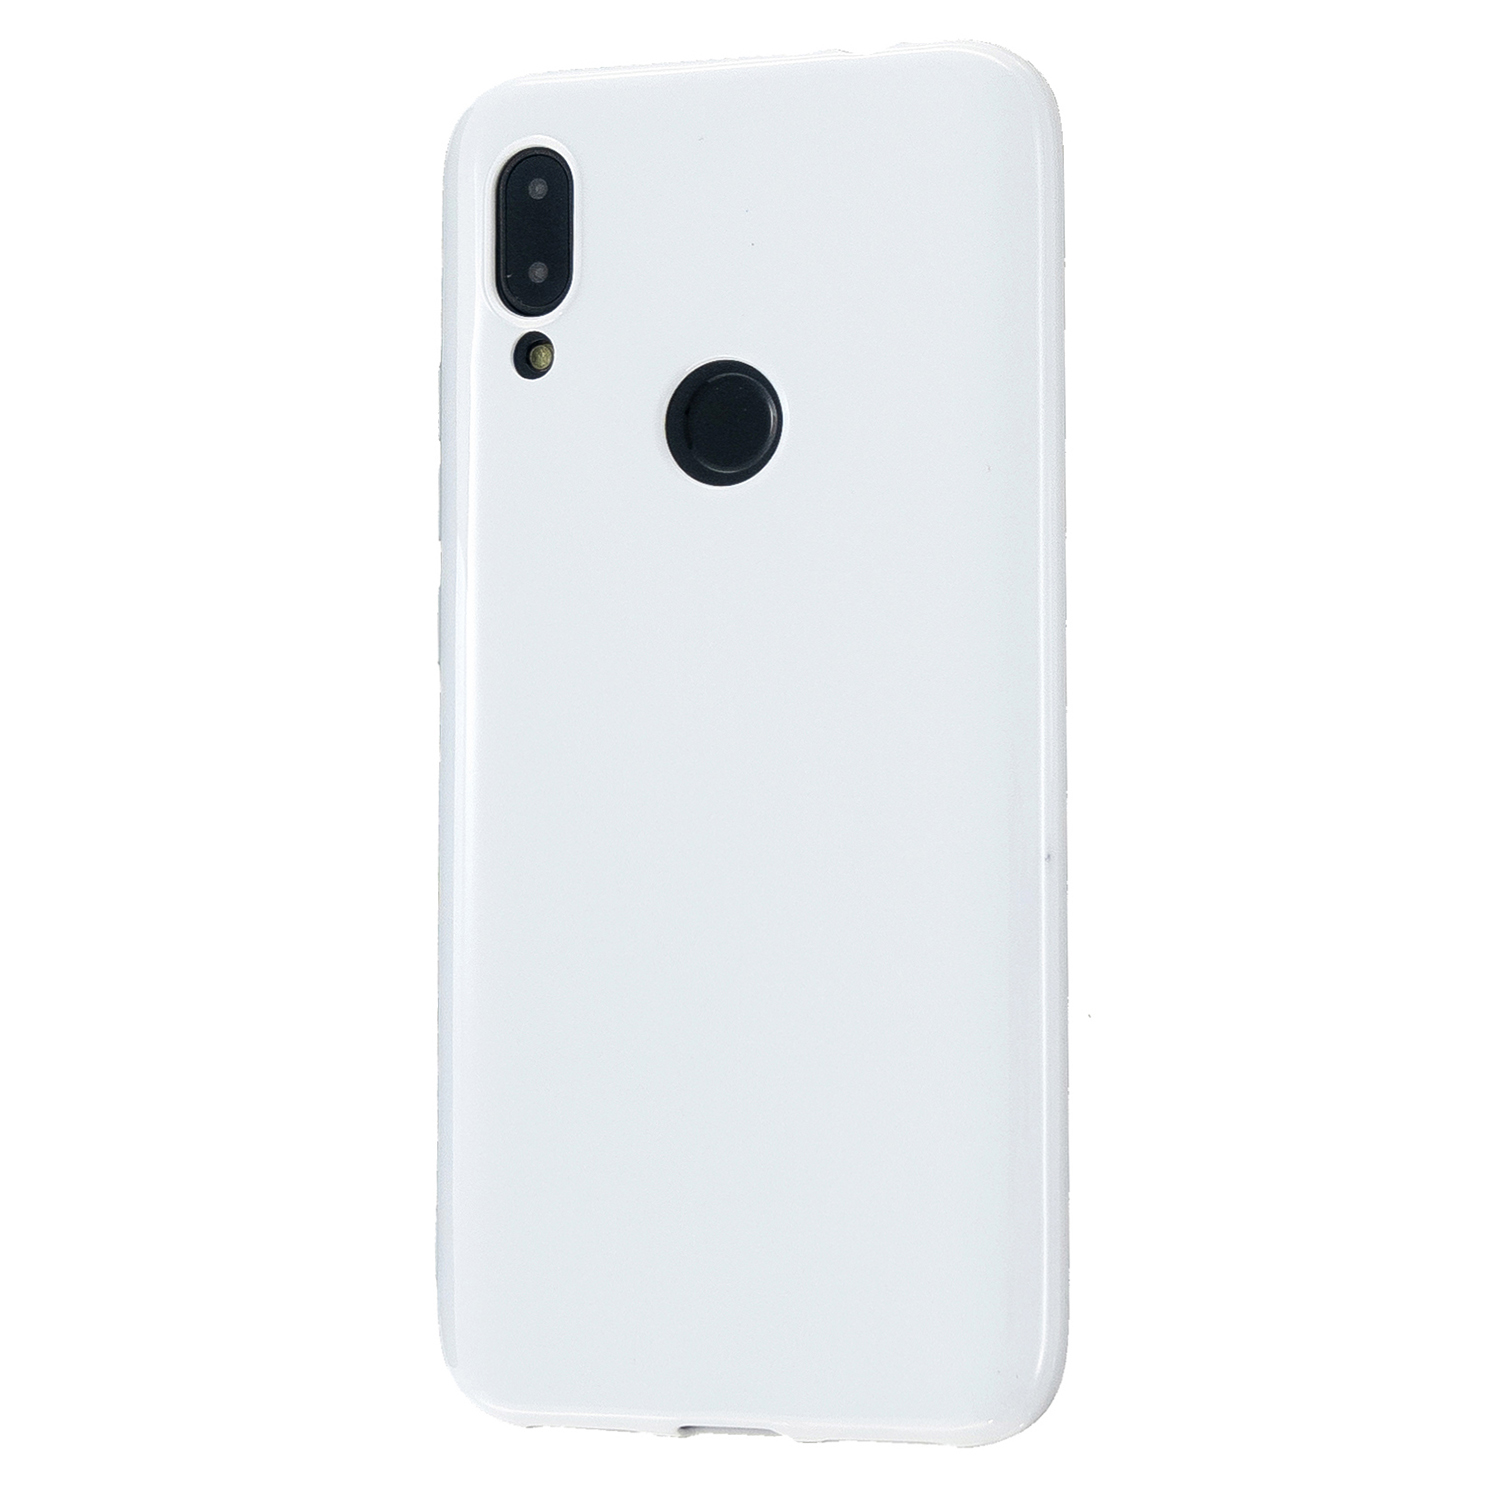 For Redmi 7/7A/Note 7/Note 7 Pro Cellphone Cover Overall Protection Soft TPU Anti-Slip Anti-Scratch Phone Case Milk white